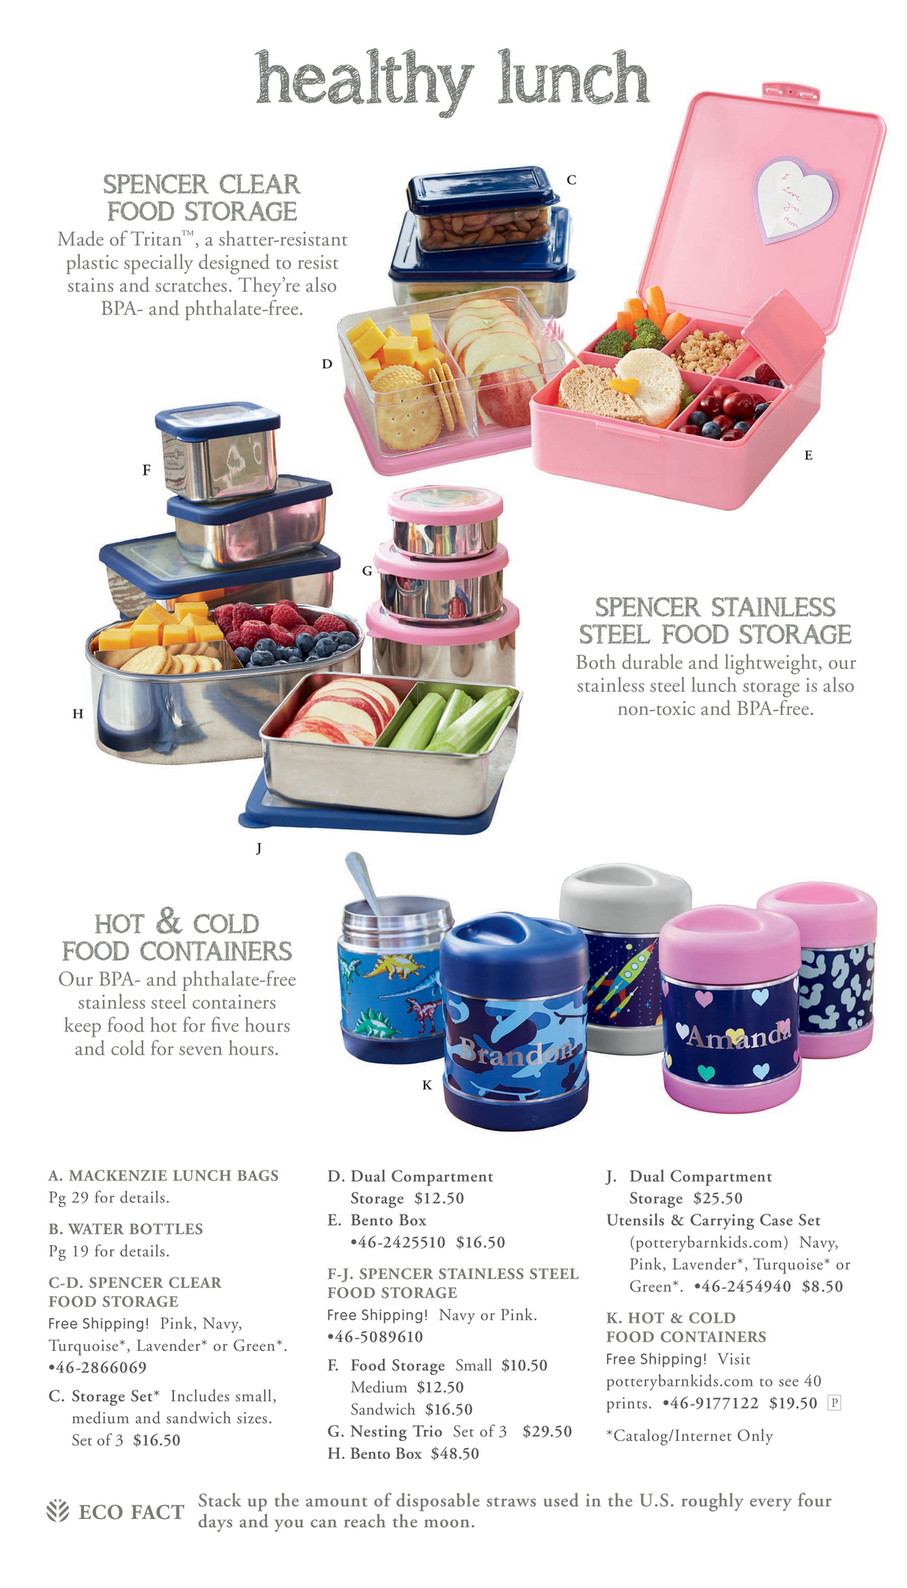 Pottery Barn Kids (PBK) - Gear Guide Fall 2016 - Page 24-25